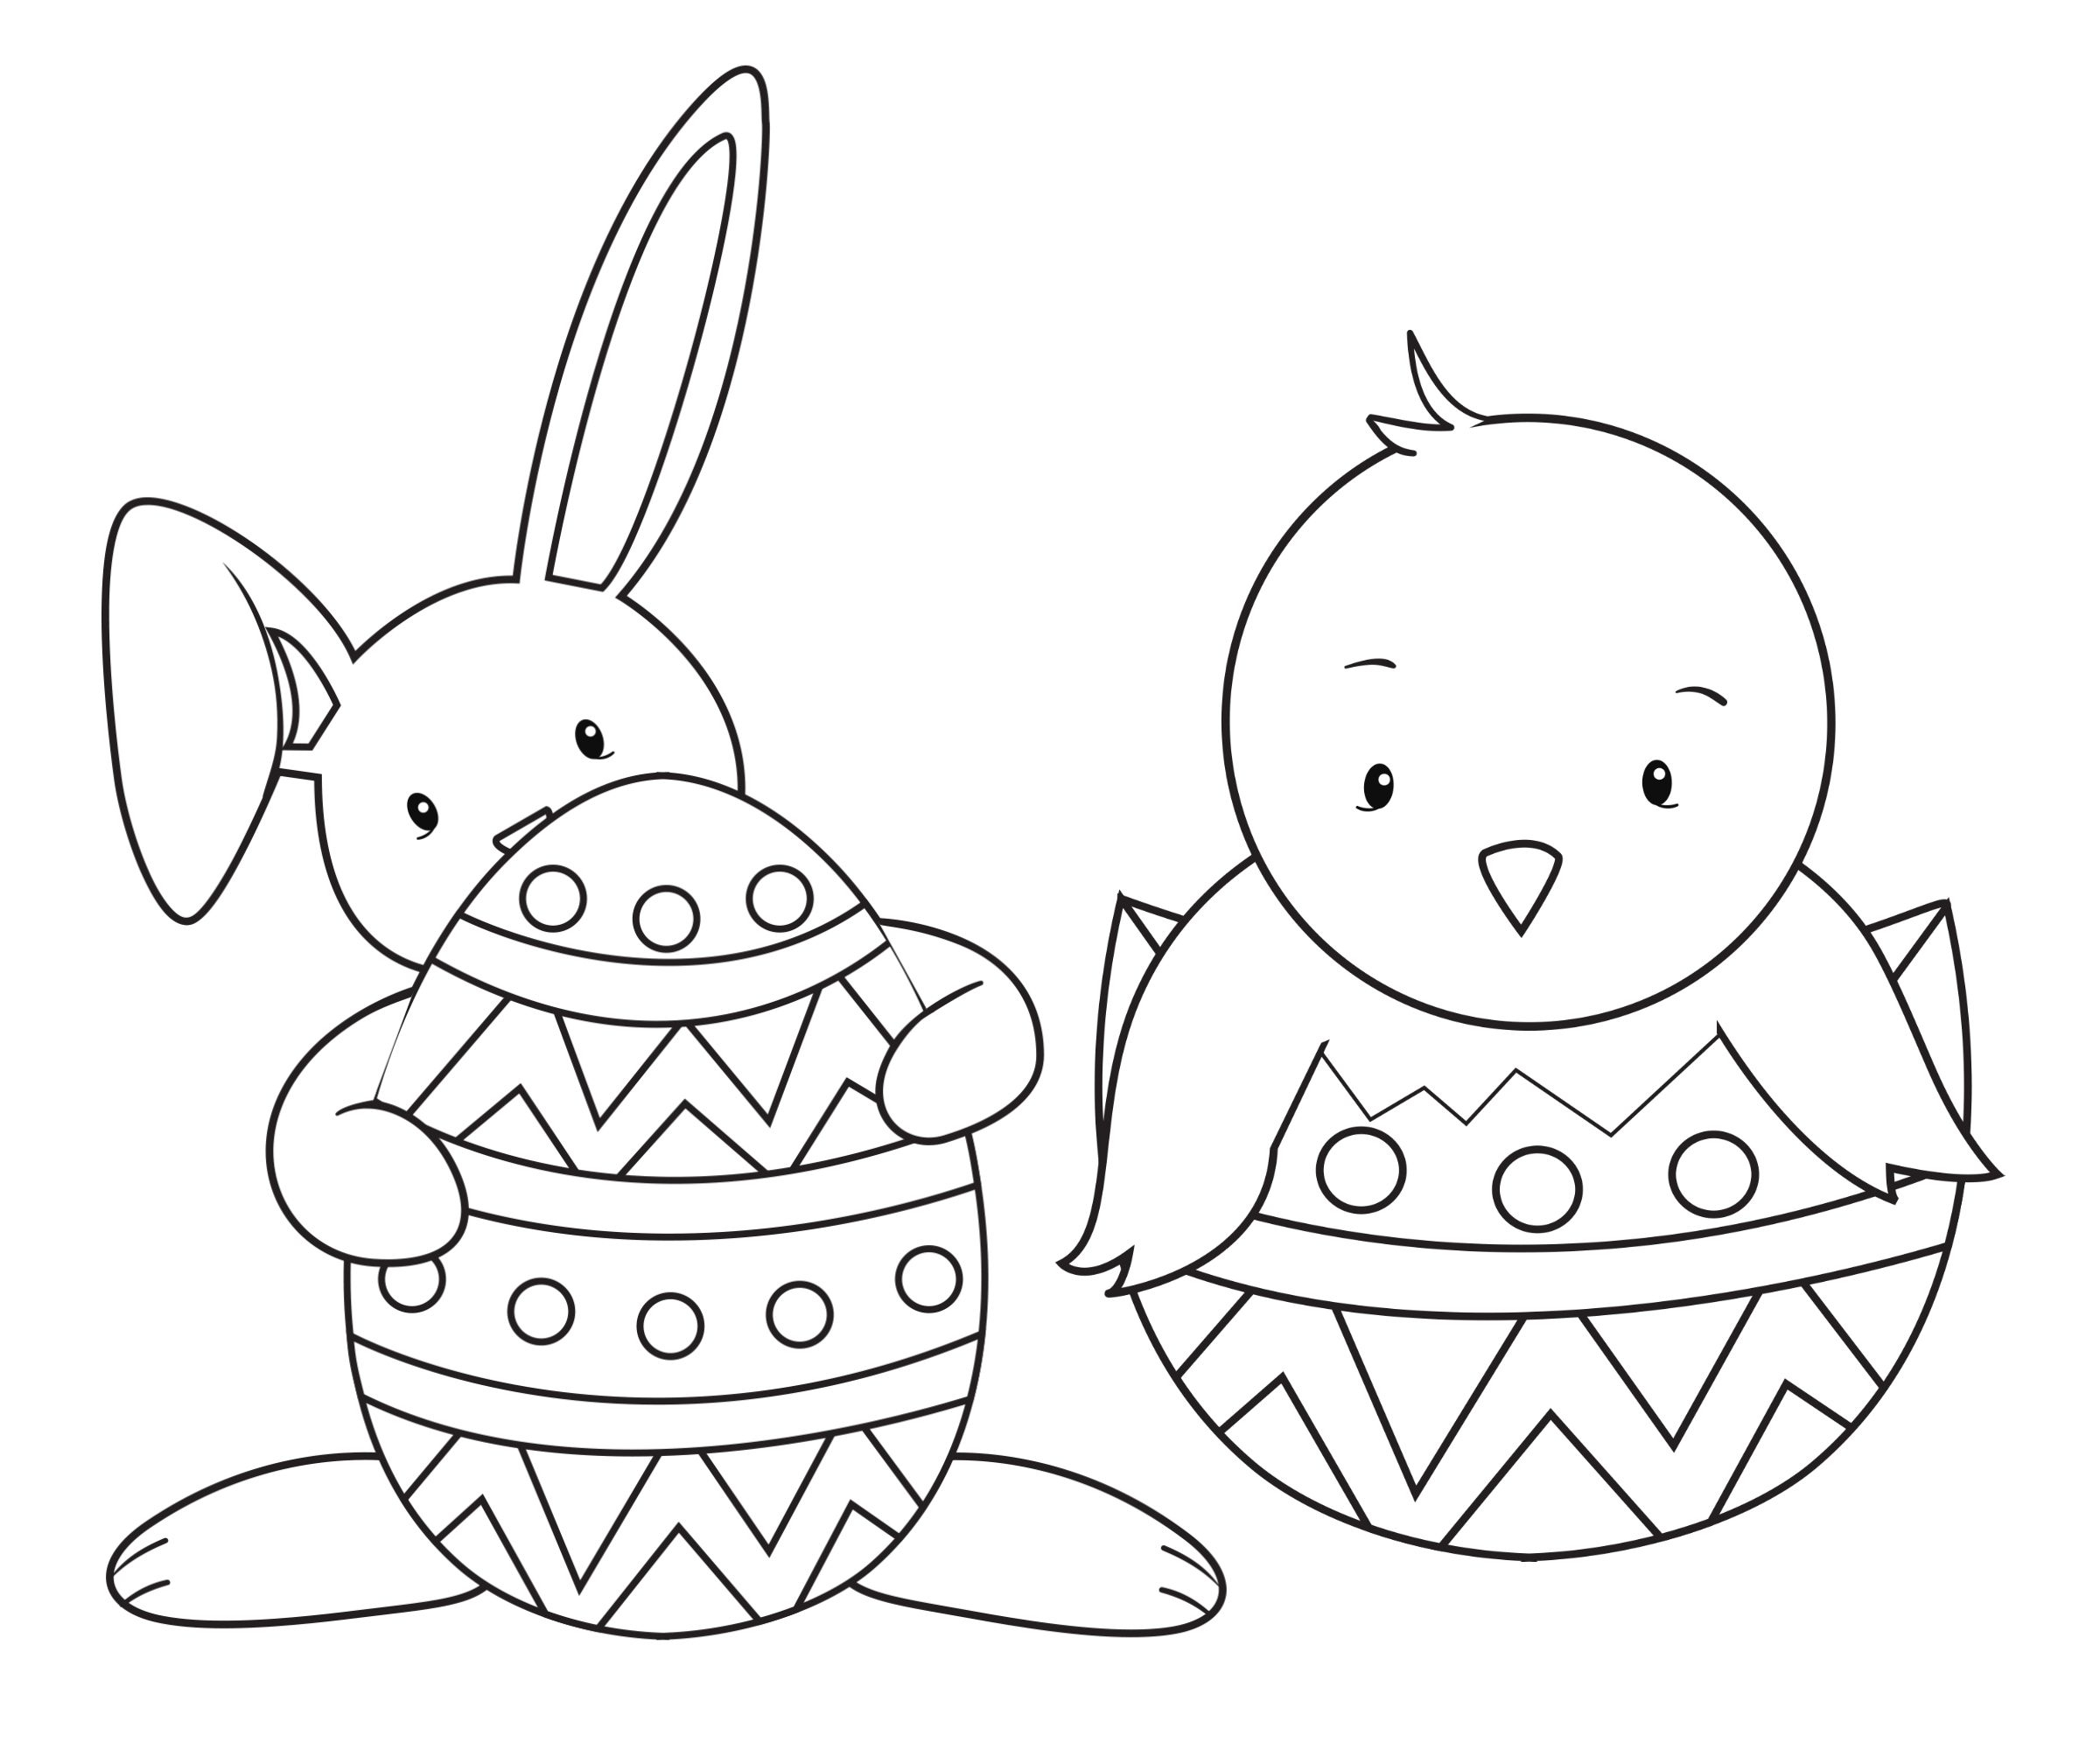 Easter Coloring Pages for Kids to Print Of Easter Coloring Printable Easter Coloring Pages Coloring Gallery